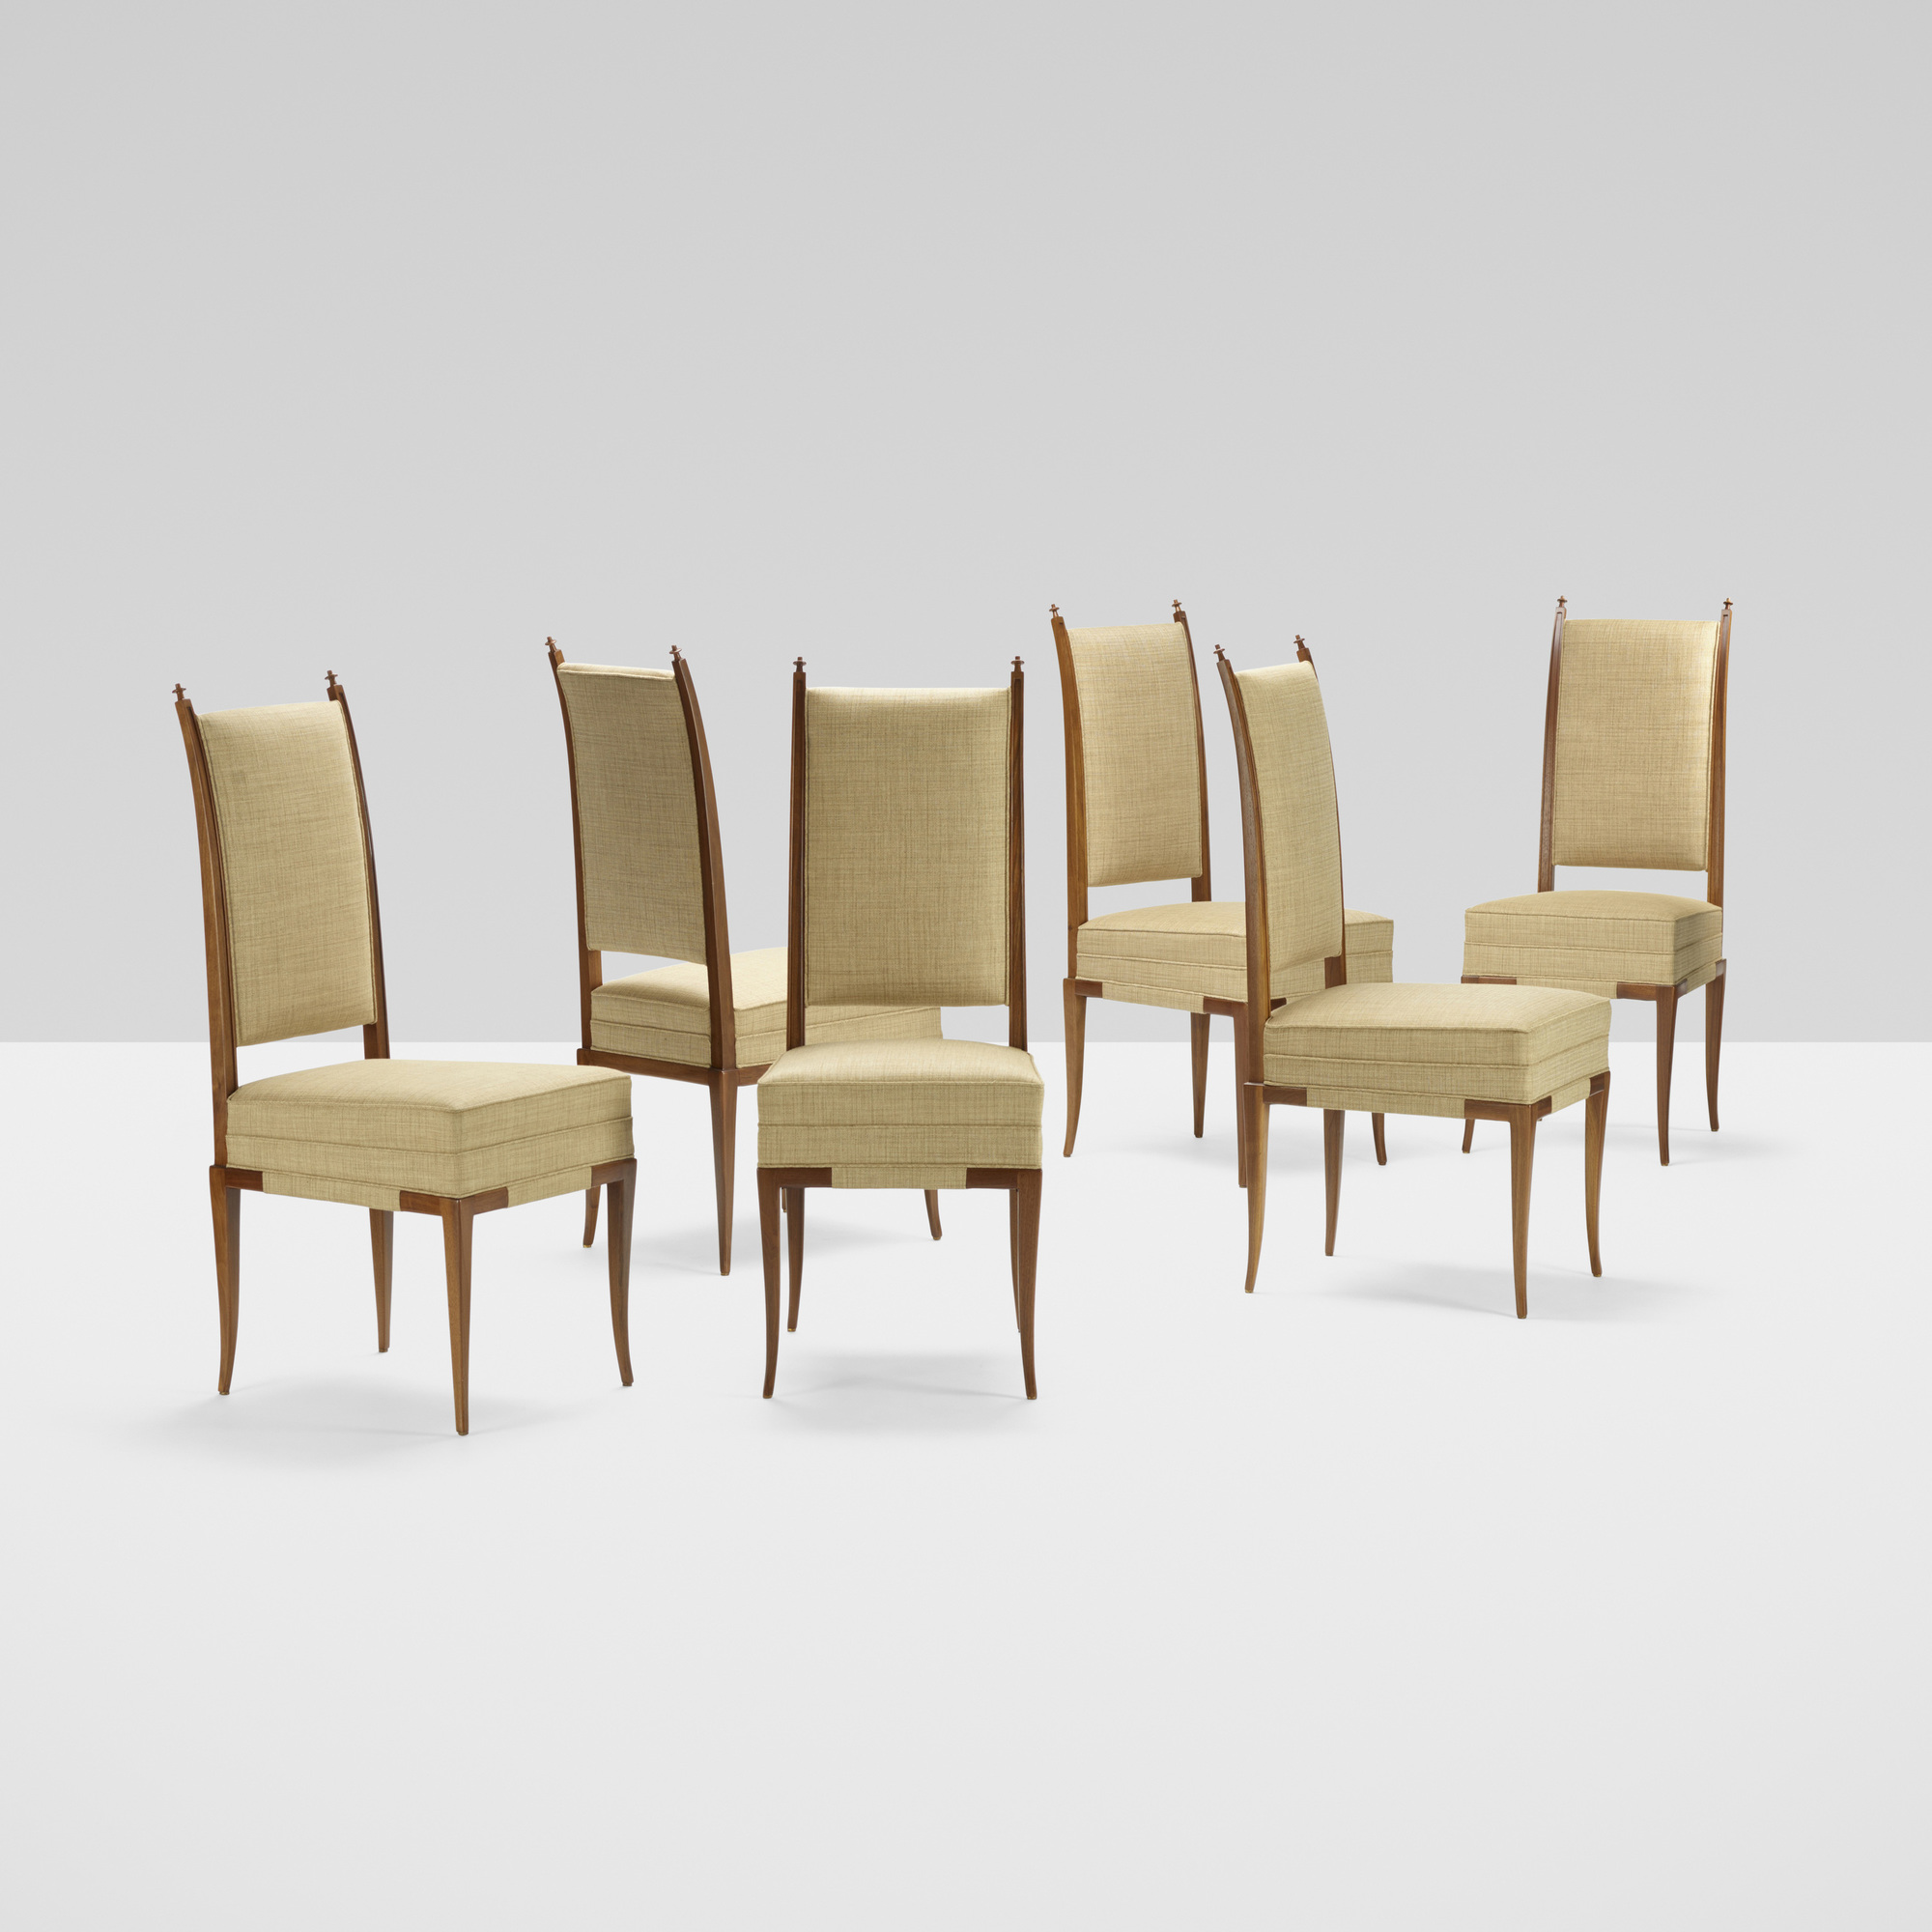 391: Tommi Parzinger / chairs, set of six (2 of 2)